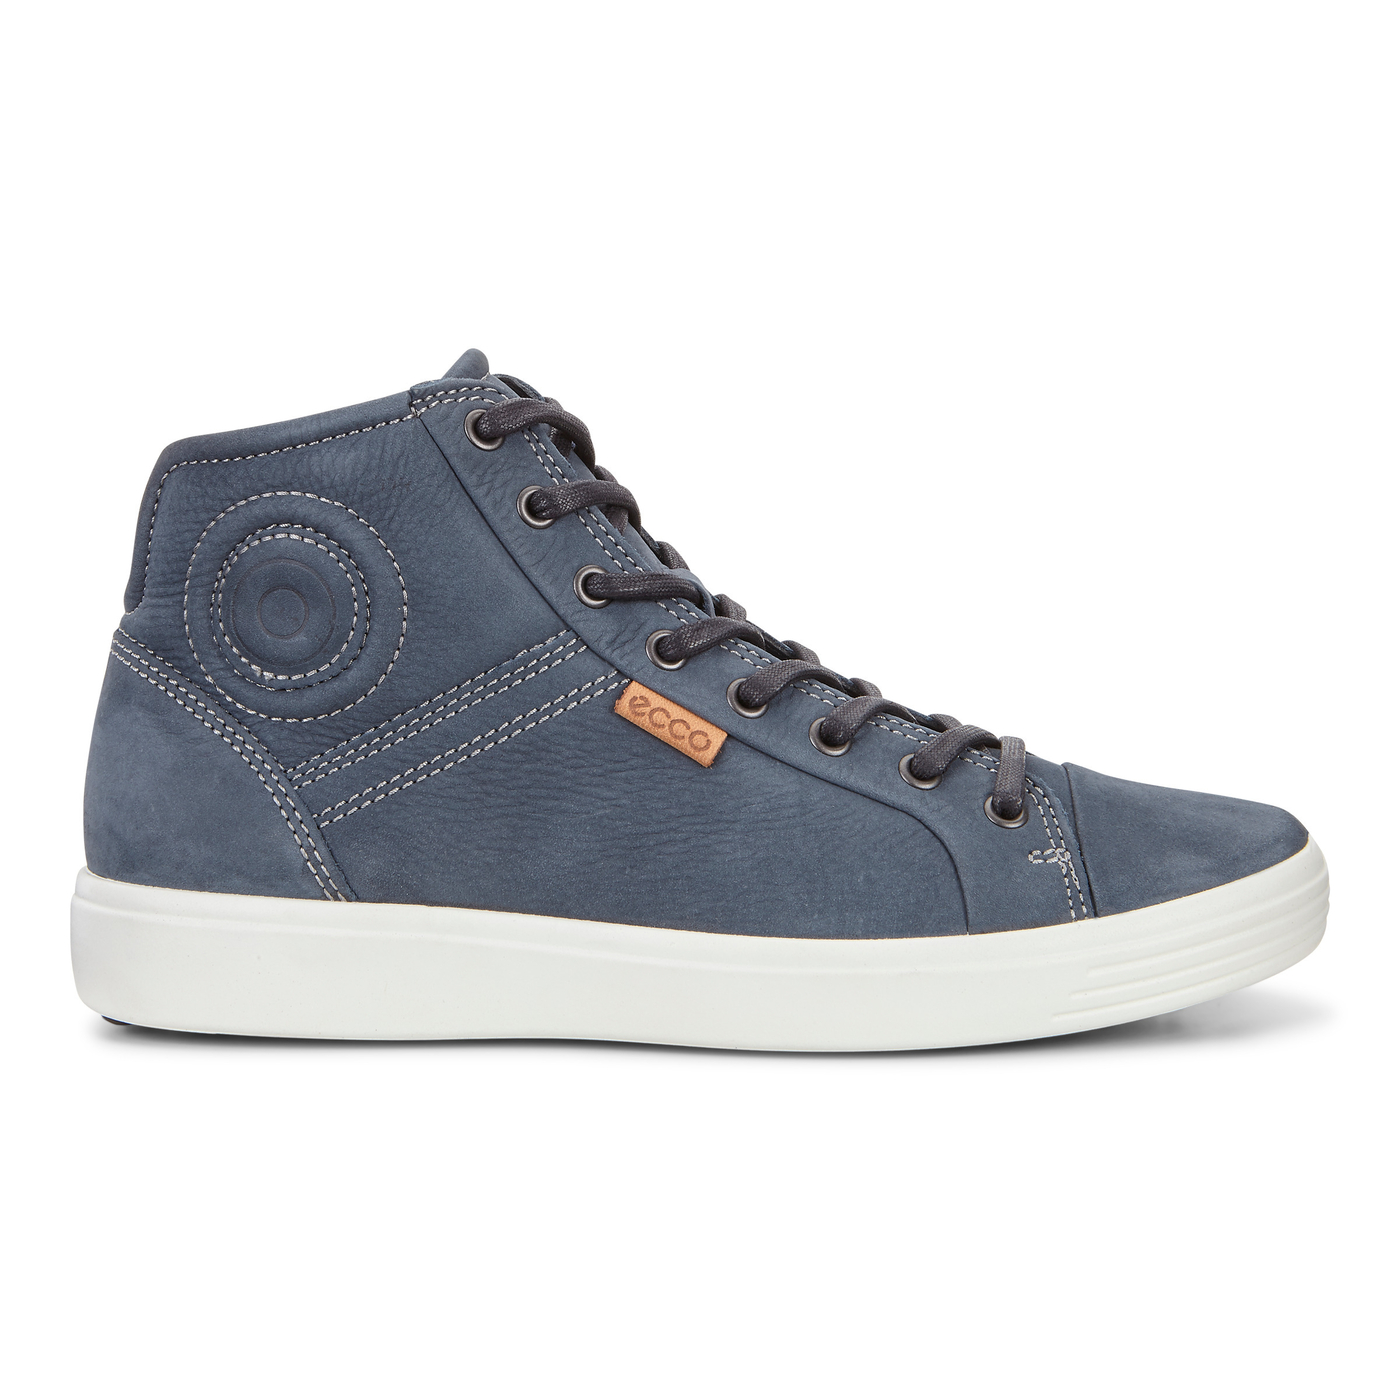 2182c00a2ee8 ECCO Mens Soft 7 High Top